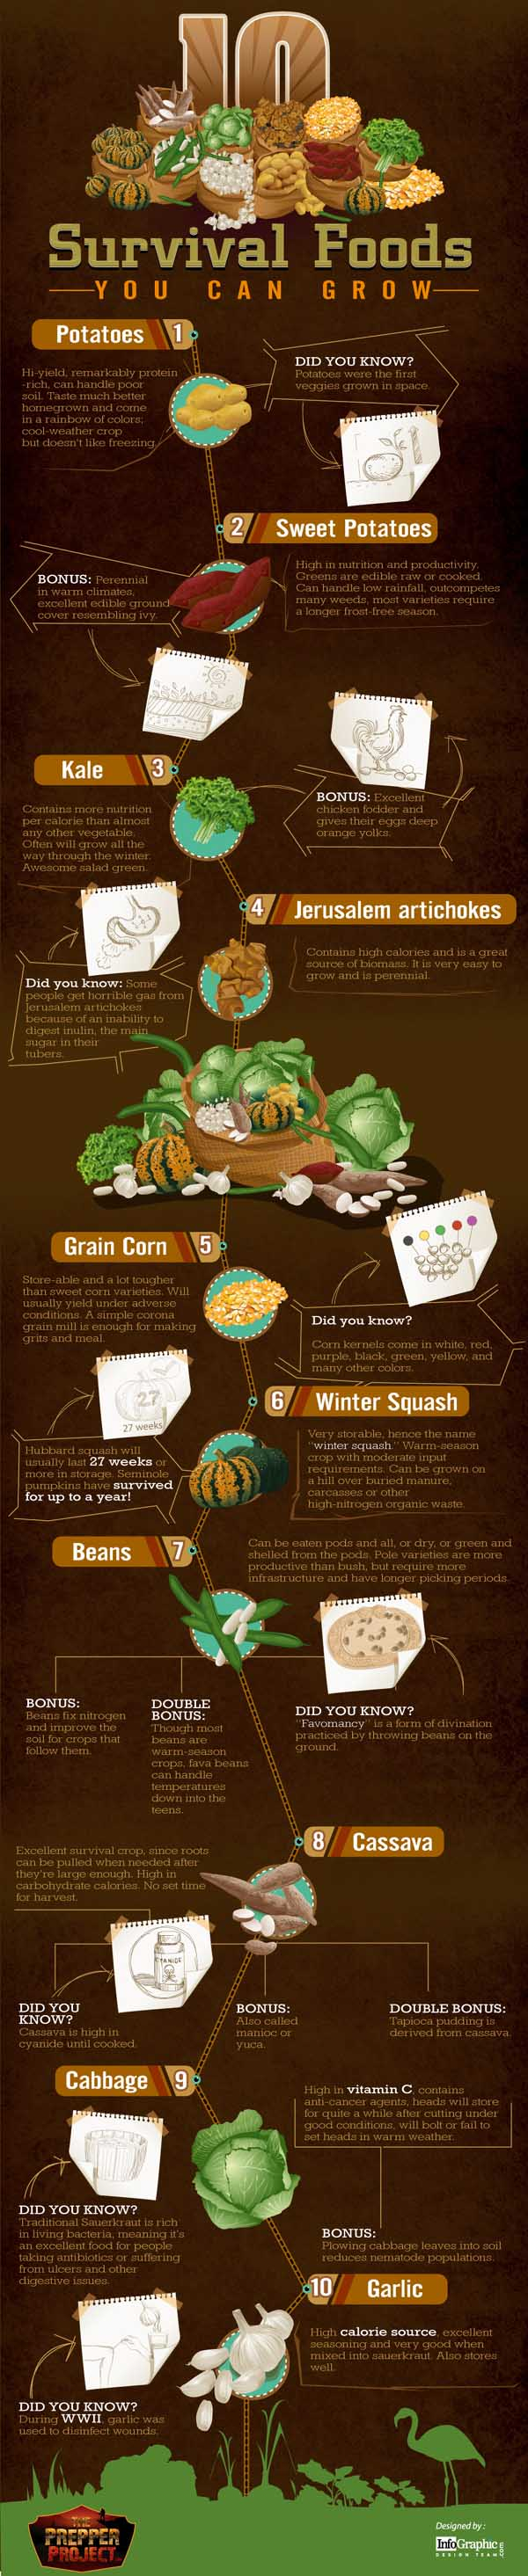 Survival-Foods-Small